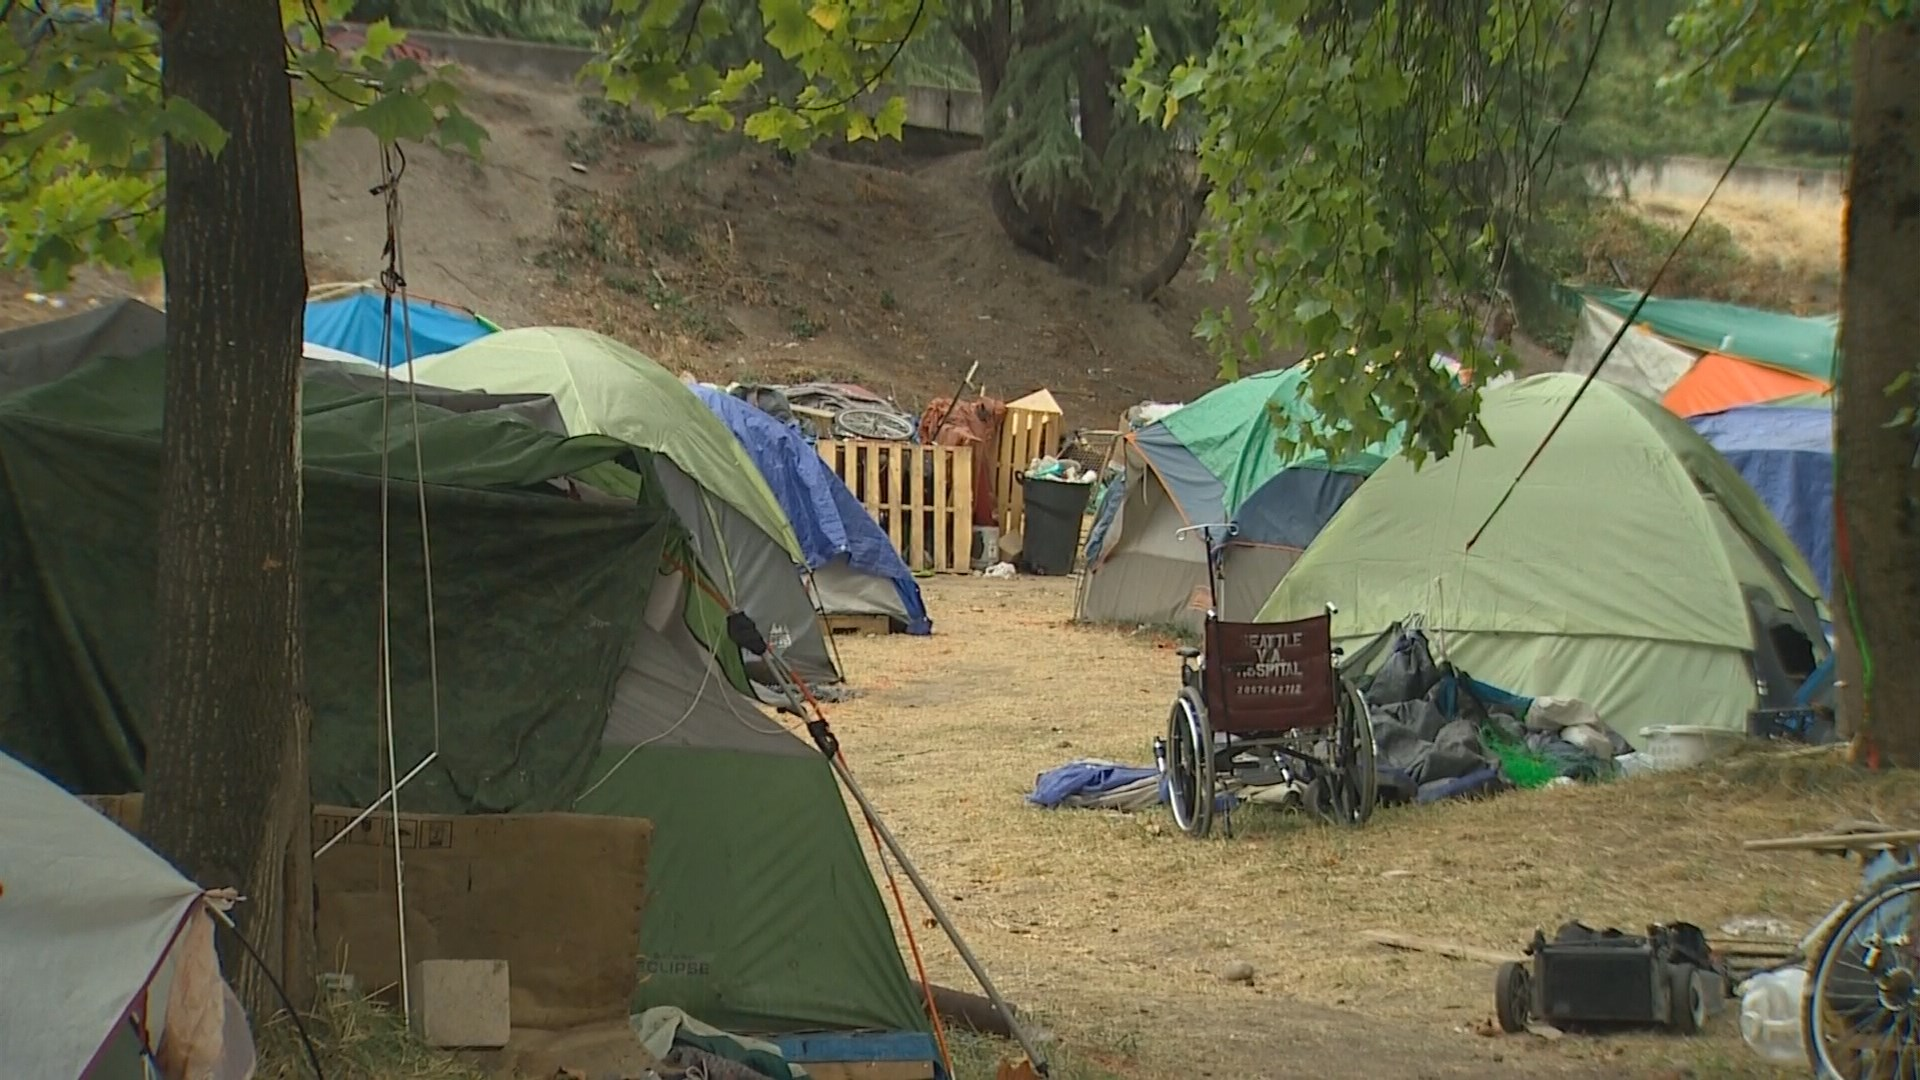 Council plan would allow homeless camps on thousands of ...